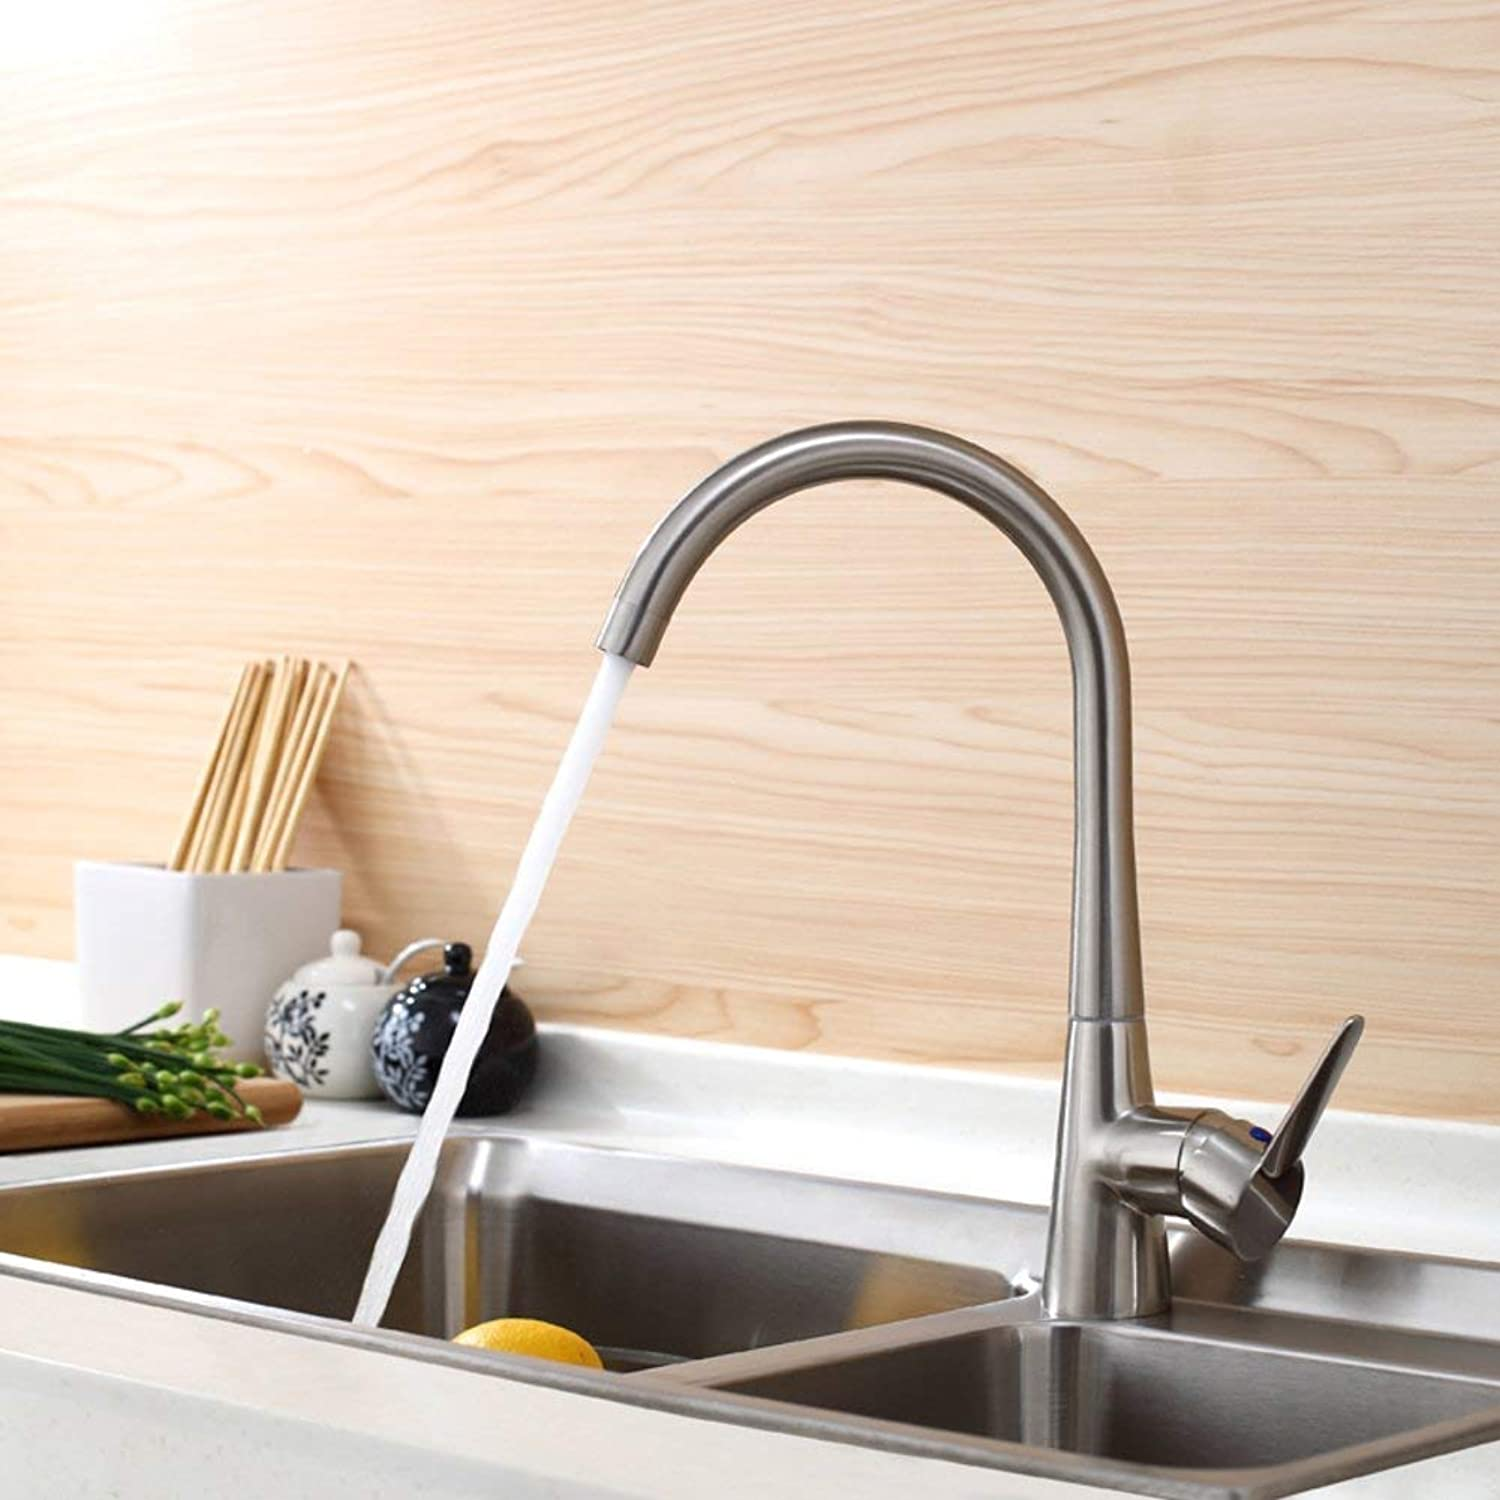 FuweiEncore Hot and cold kitchen faucet Vegetables basin faucet Tap both hot and cold Brushed faucet (color   -, Size   -)